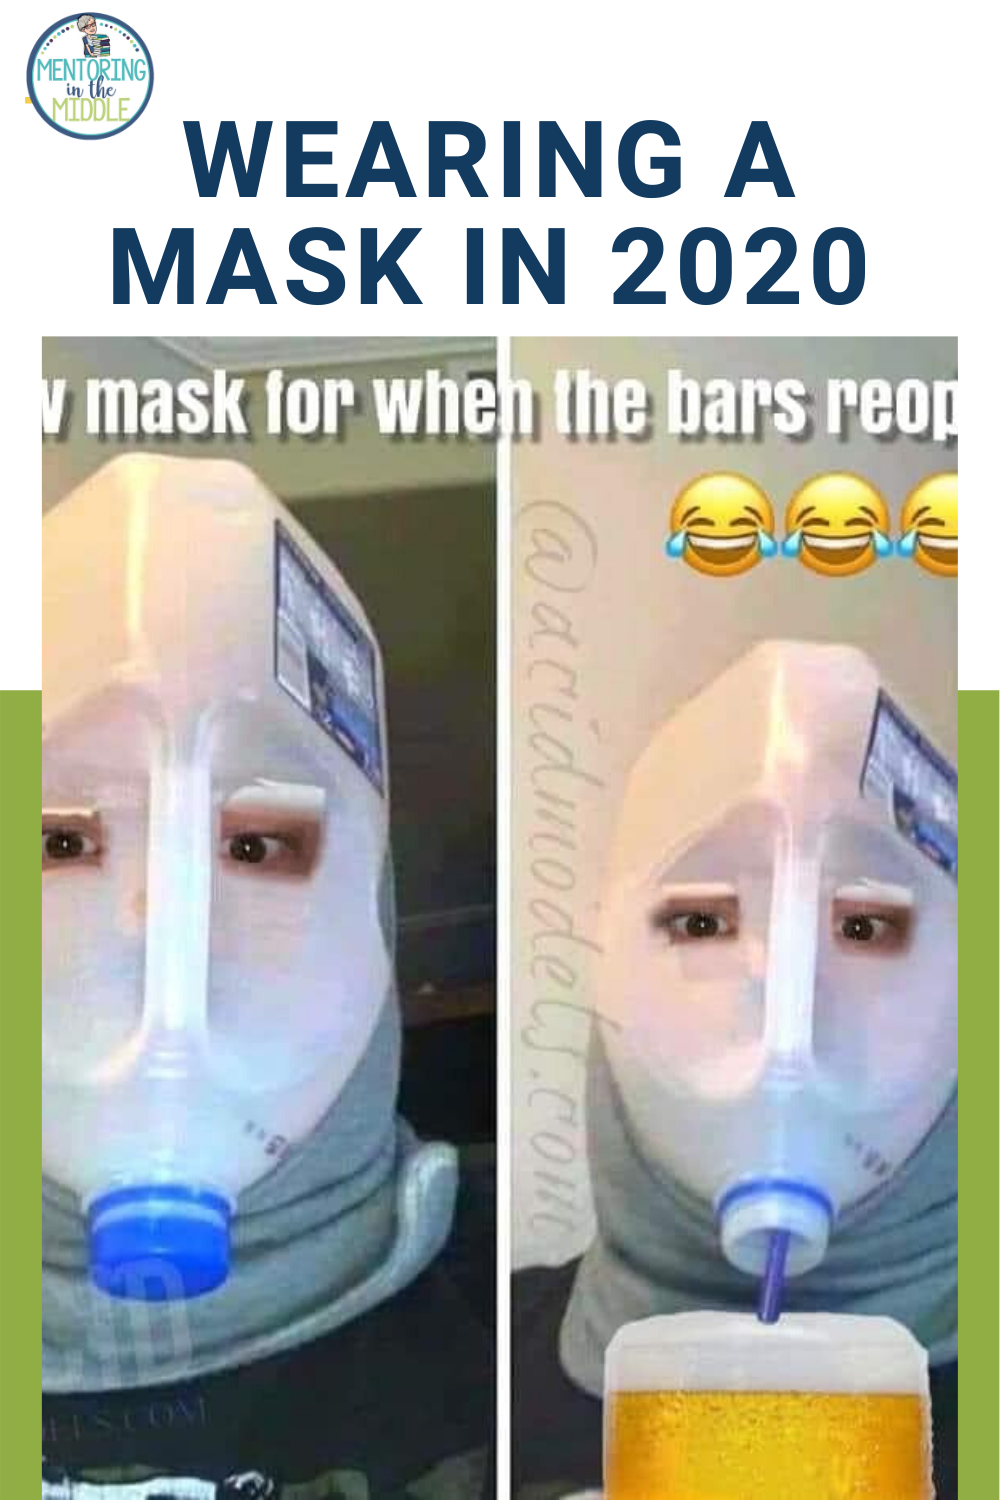 Funny Memes For Wearing Masks In 2020 Blended Learning Middle School Upper Elementary